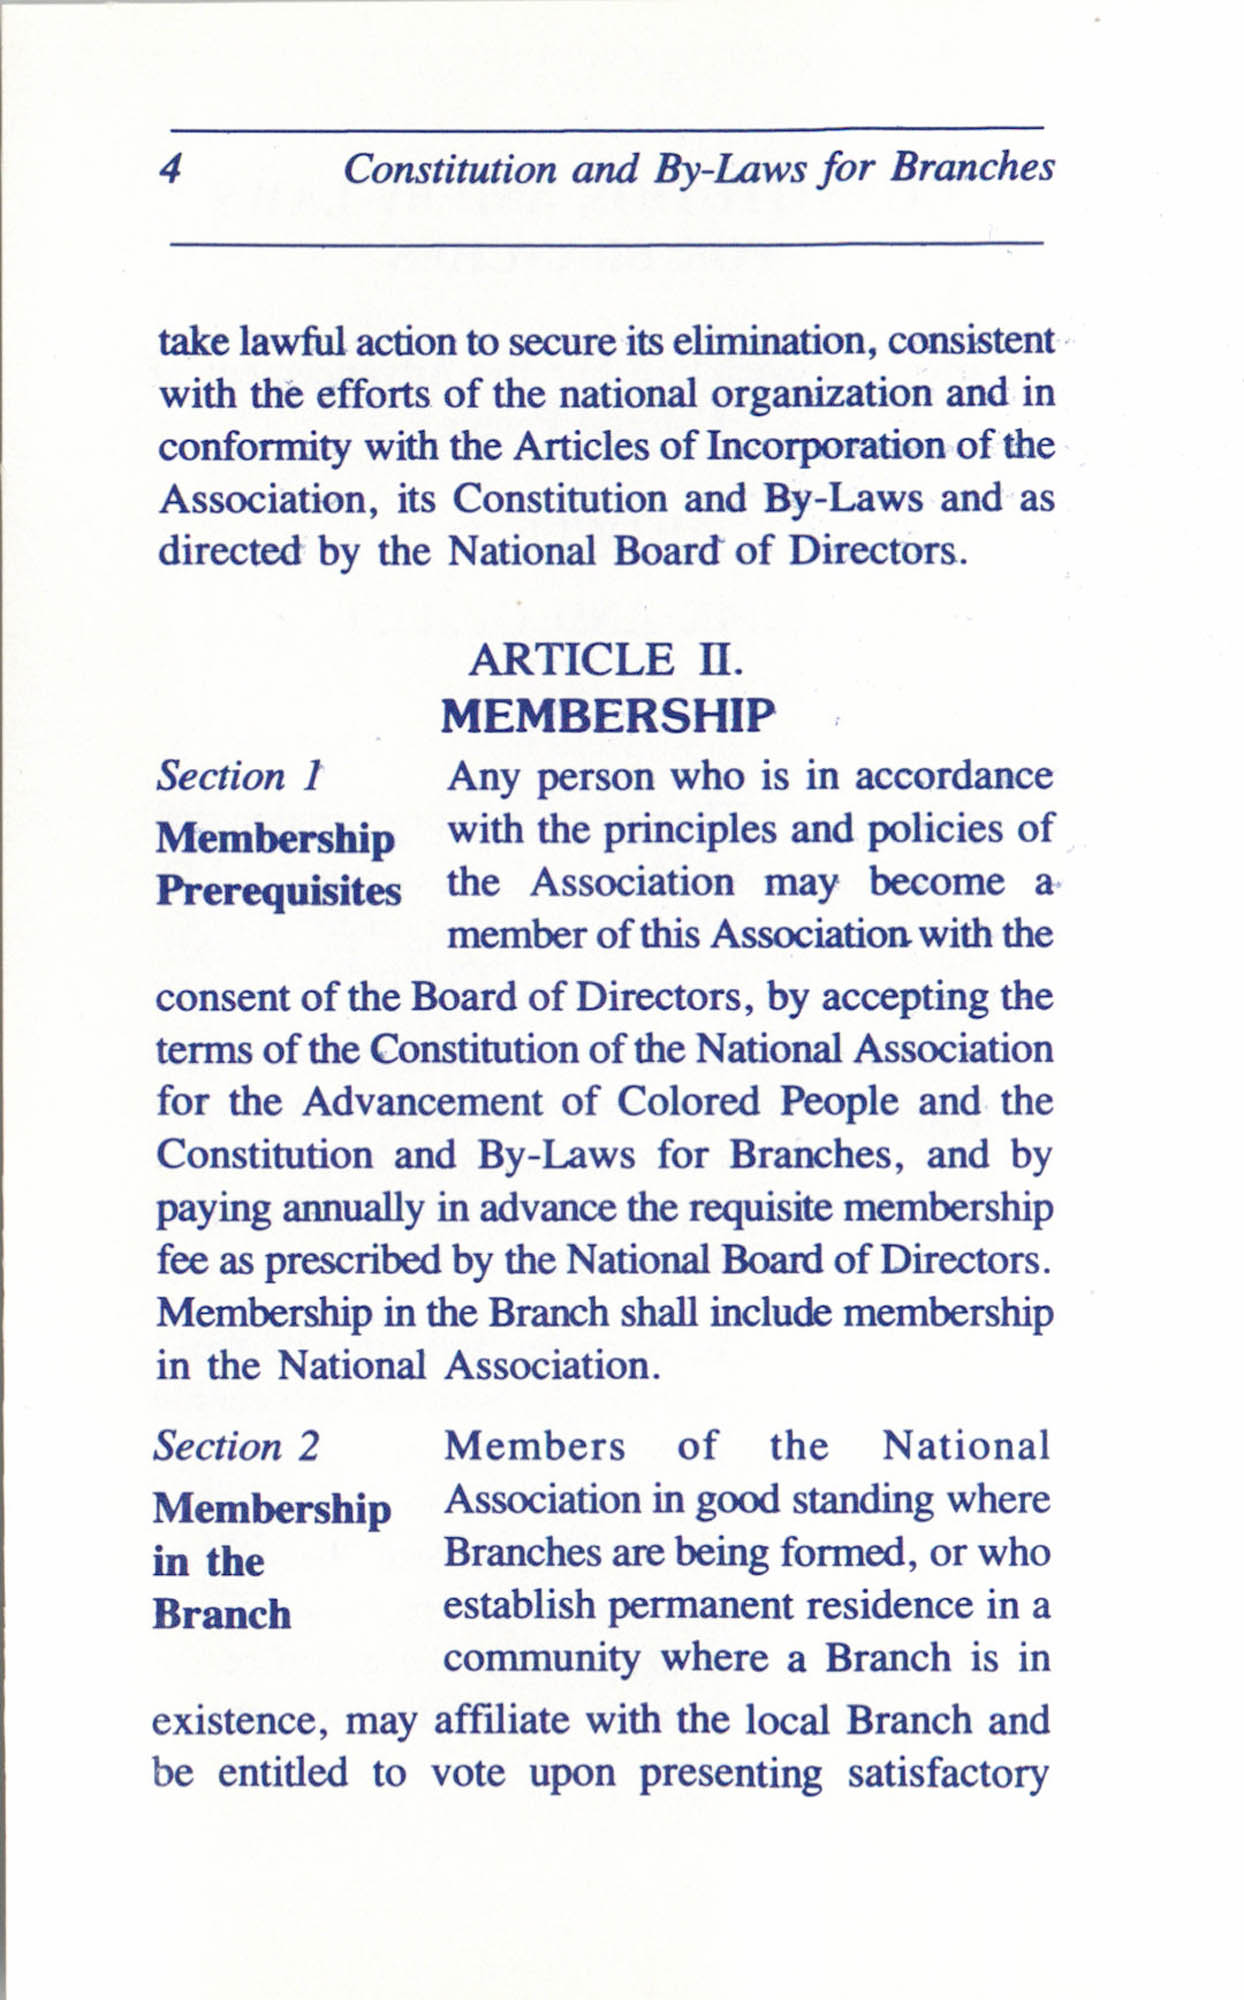 Constitution and By-Laws for Branches of the NAACP, June 1993, Page 4